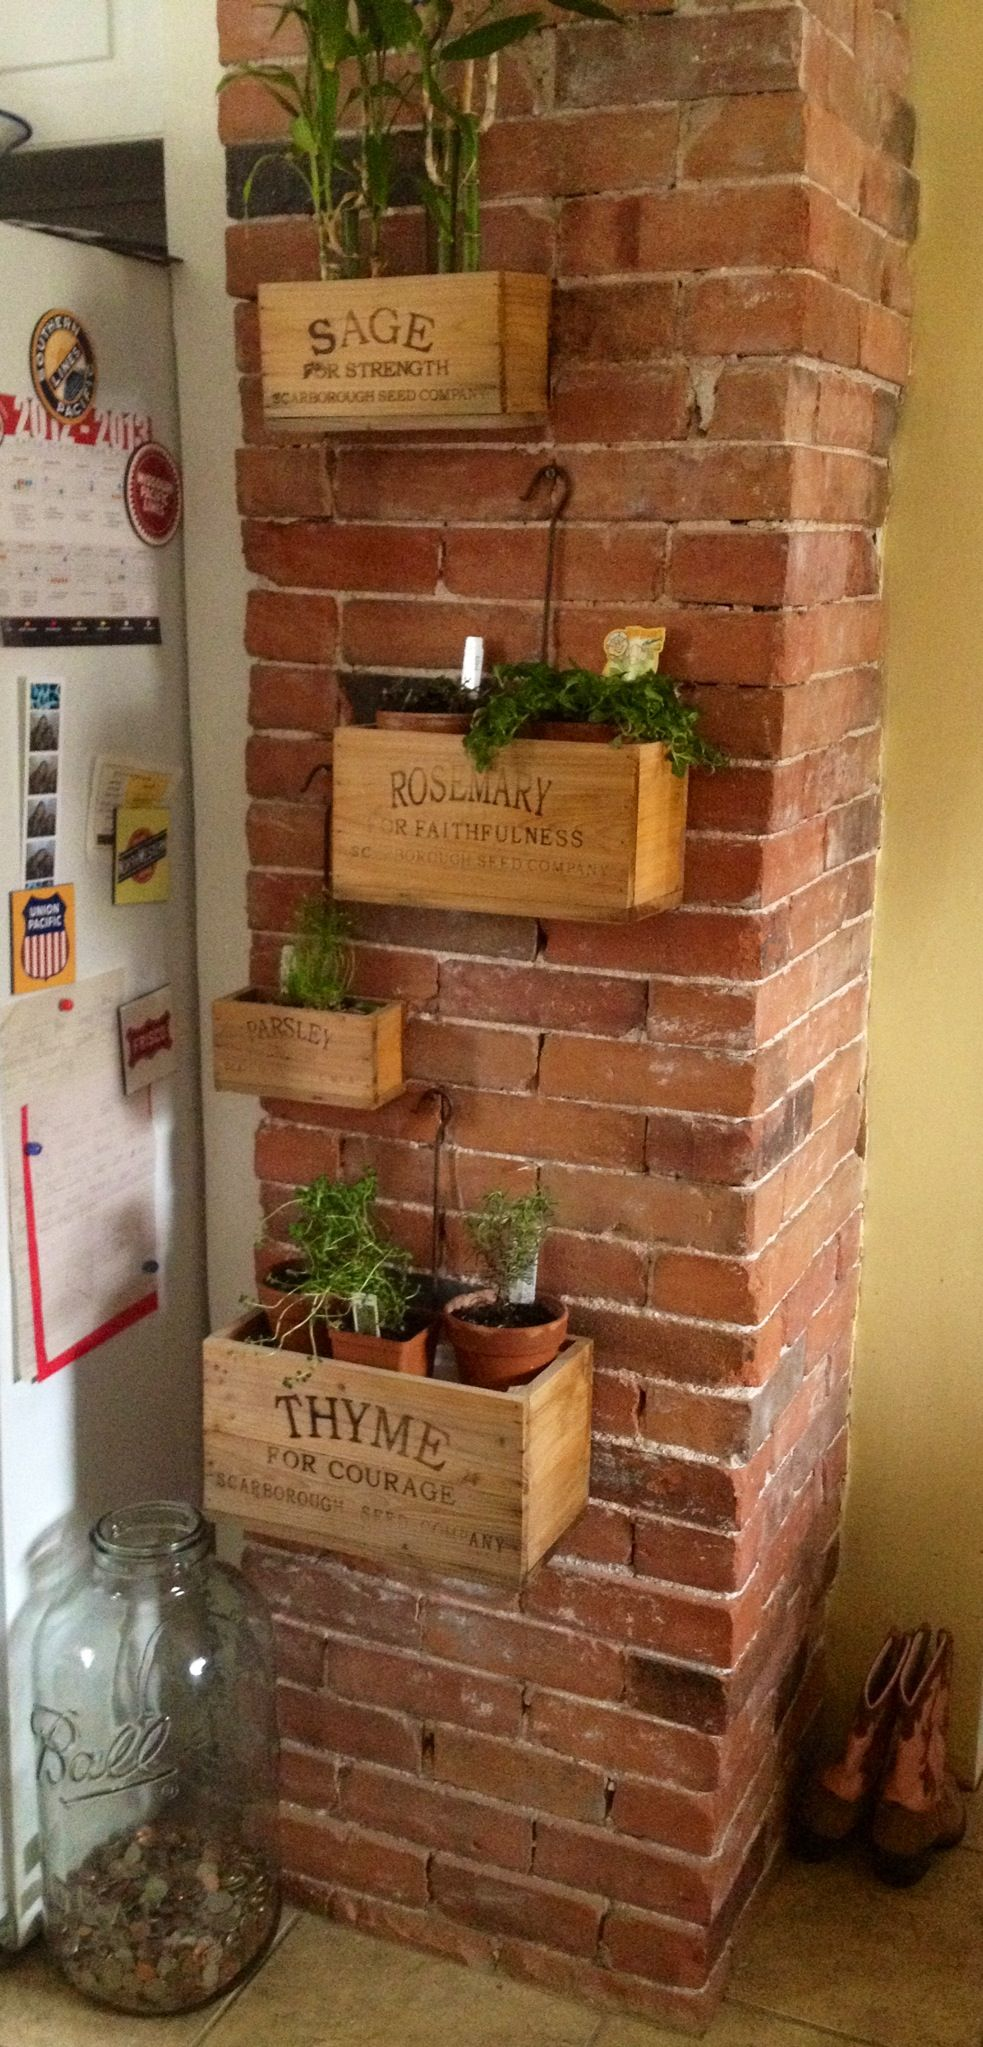 What I Like Different Size Planter Boxes On The Brick I Think I